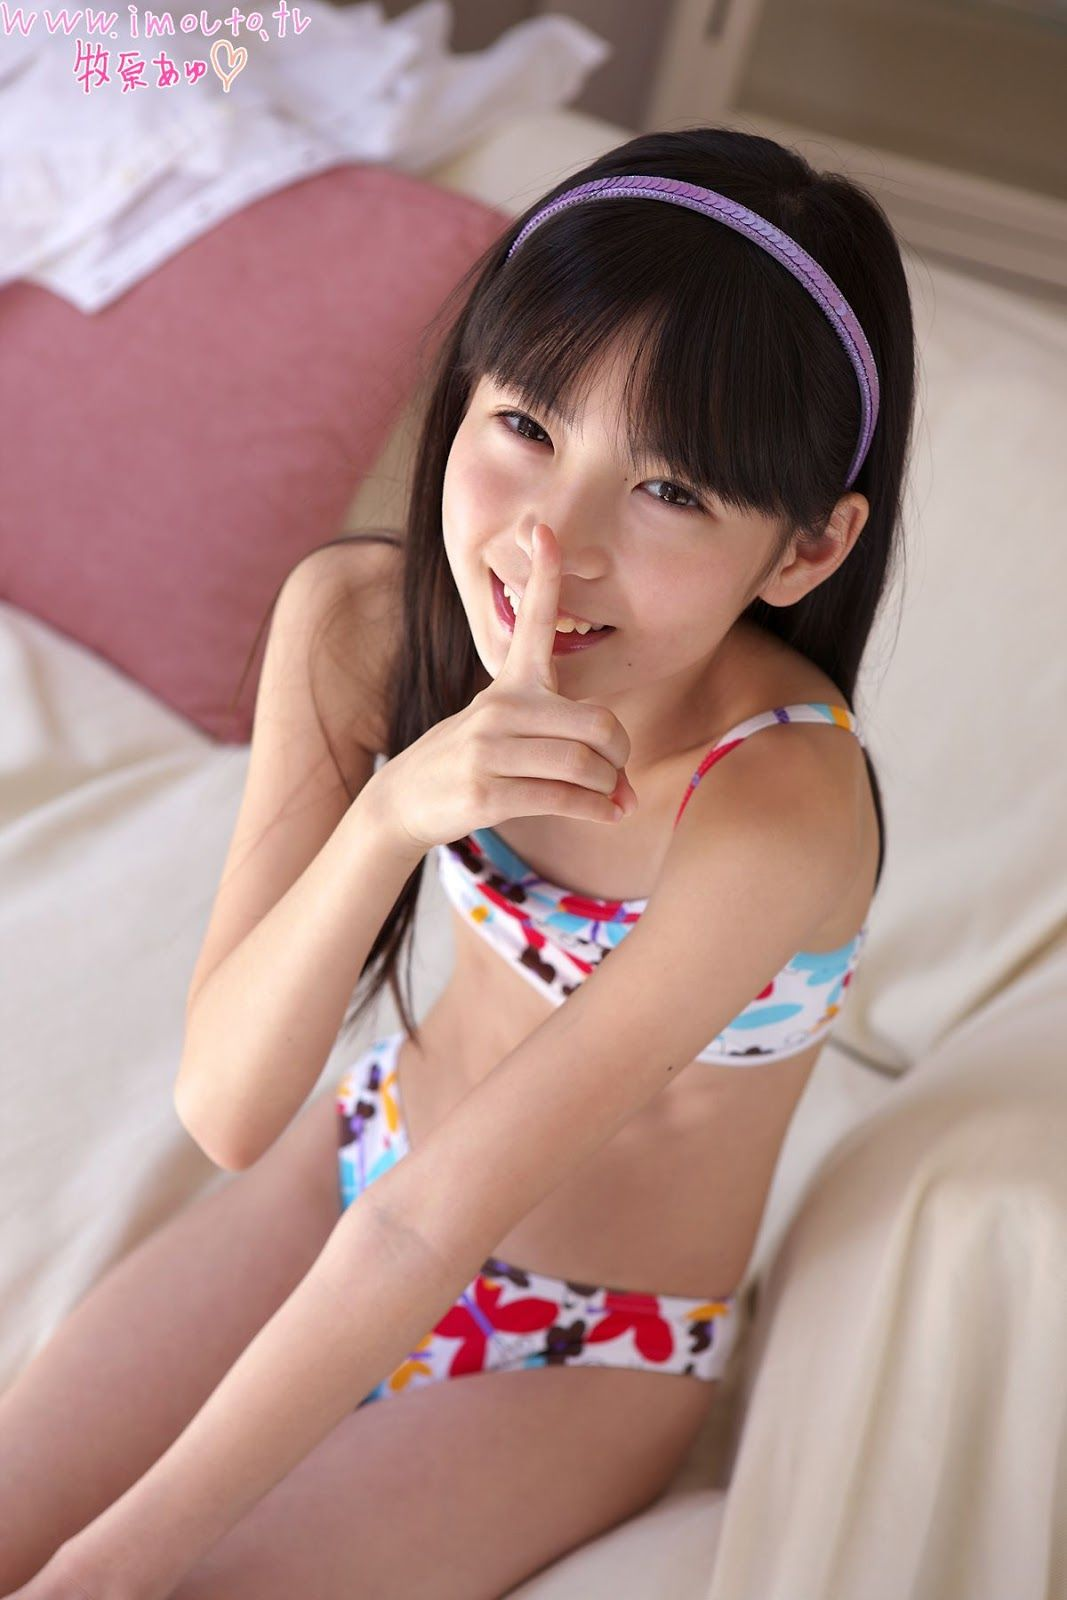 imouto TV karen Ayu Makihara 牧原あゆ, Imouto.tv (junshin2_makihara01) Junior Idol U15 Part03